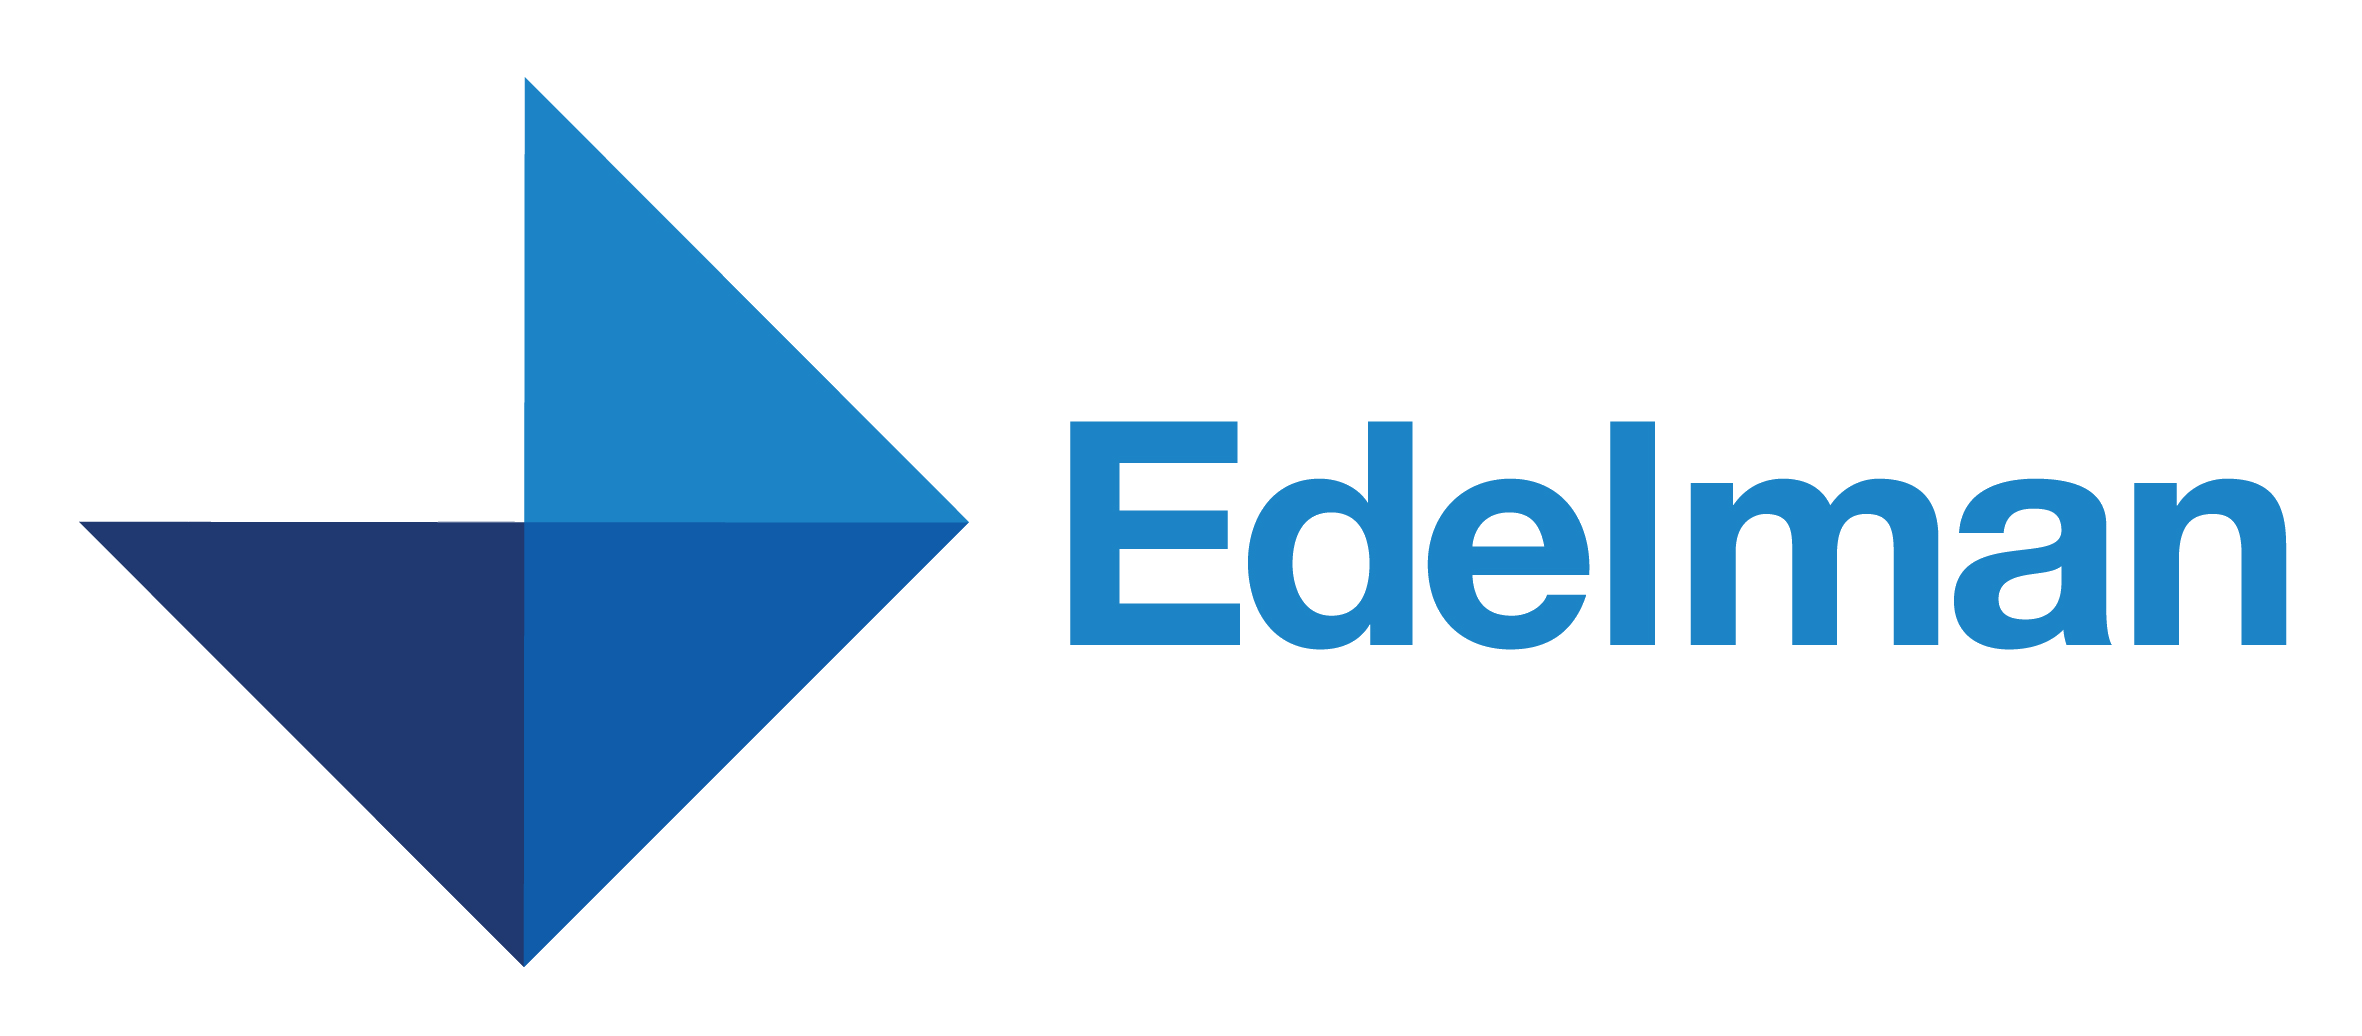 Edelman-logo-Transparent